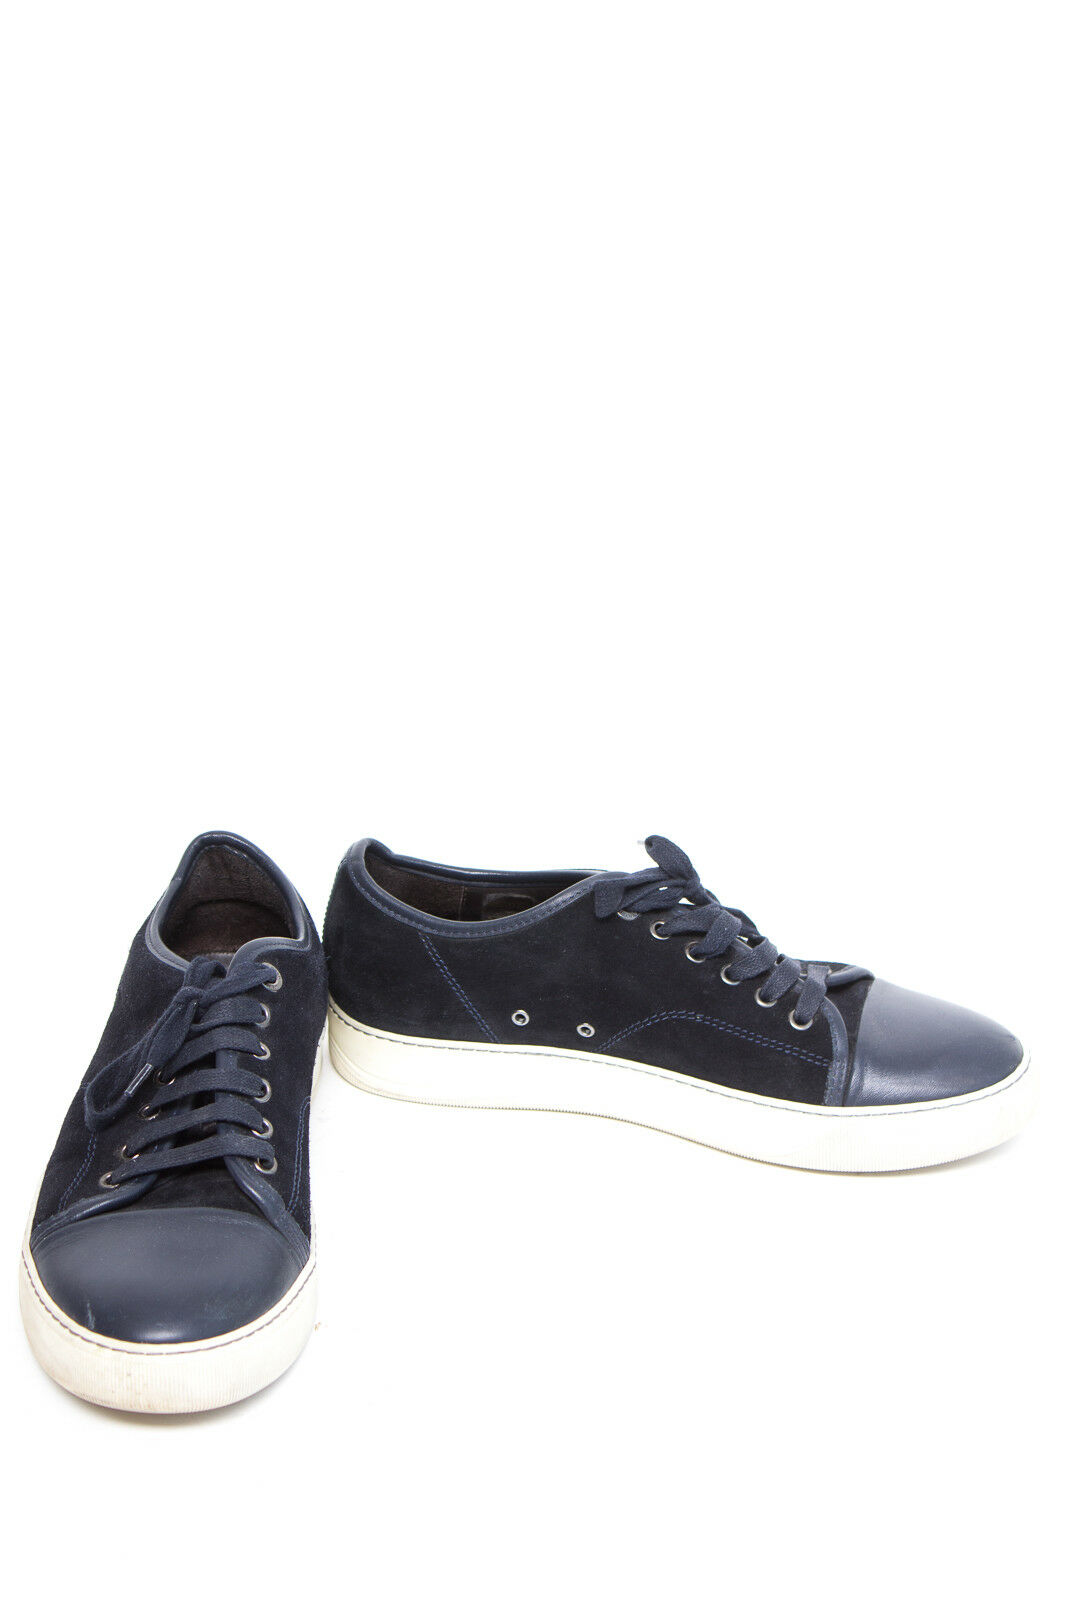 LANVIN chaussures hommes Turnchaussures Taille UK 5 EUR 38 bleu Cuir